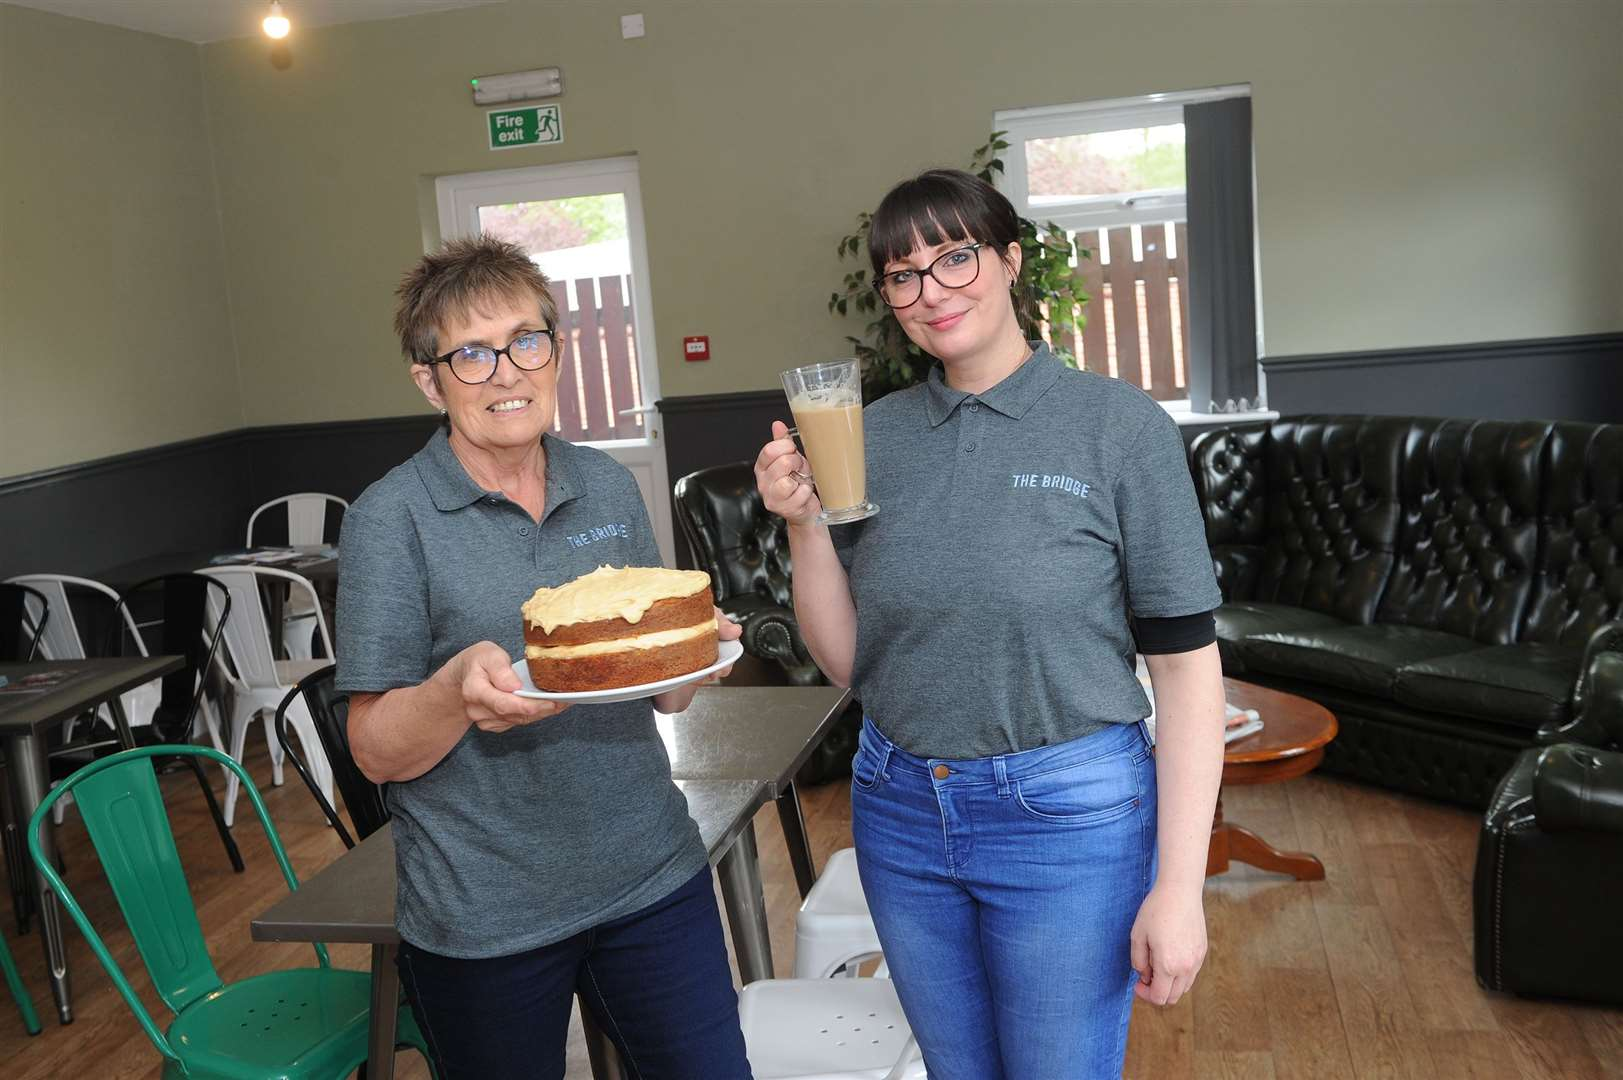 The Bridge Project was hit with an online scam in January losing £10K and said it could not expand its successful meal delivery service as a result. The owner of Brundon Lane cafe has come forward to offer the charity to run the cafe on the business park, which will mean that if it works out, they can expand their meal service. ..Pictured: Cyndi Gosling (Cafe Manager) and Josie Hague (Team Member)..PICTURE: Mecha Morton... (9830227)